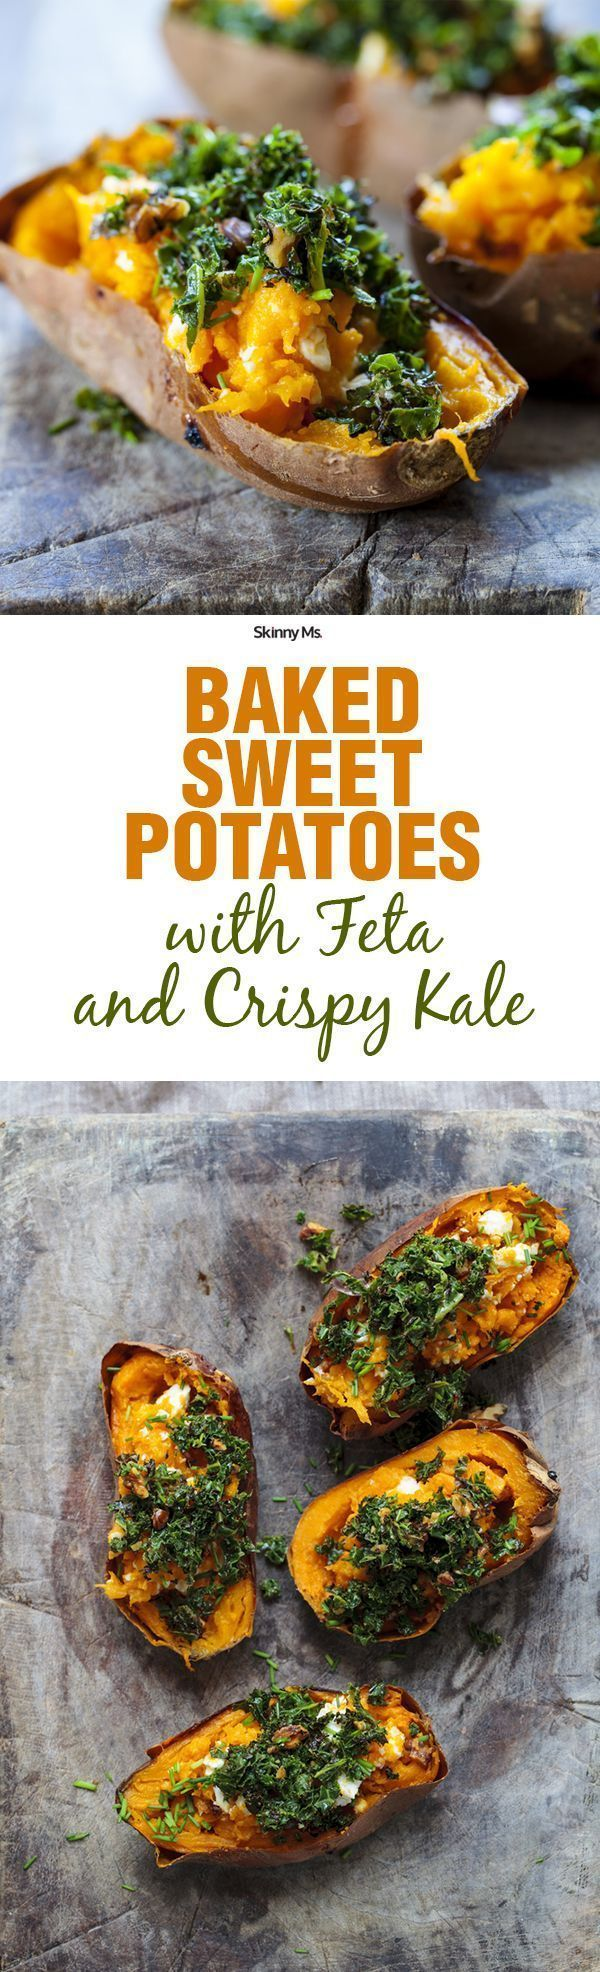 Baked Sweet Potatoes with Feta and Crispy Kale--talk about superfoods! I'm going to serve these as a side at my Thanksgiving dinner.